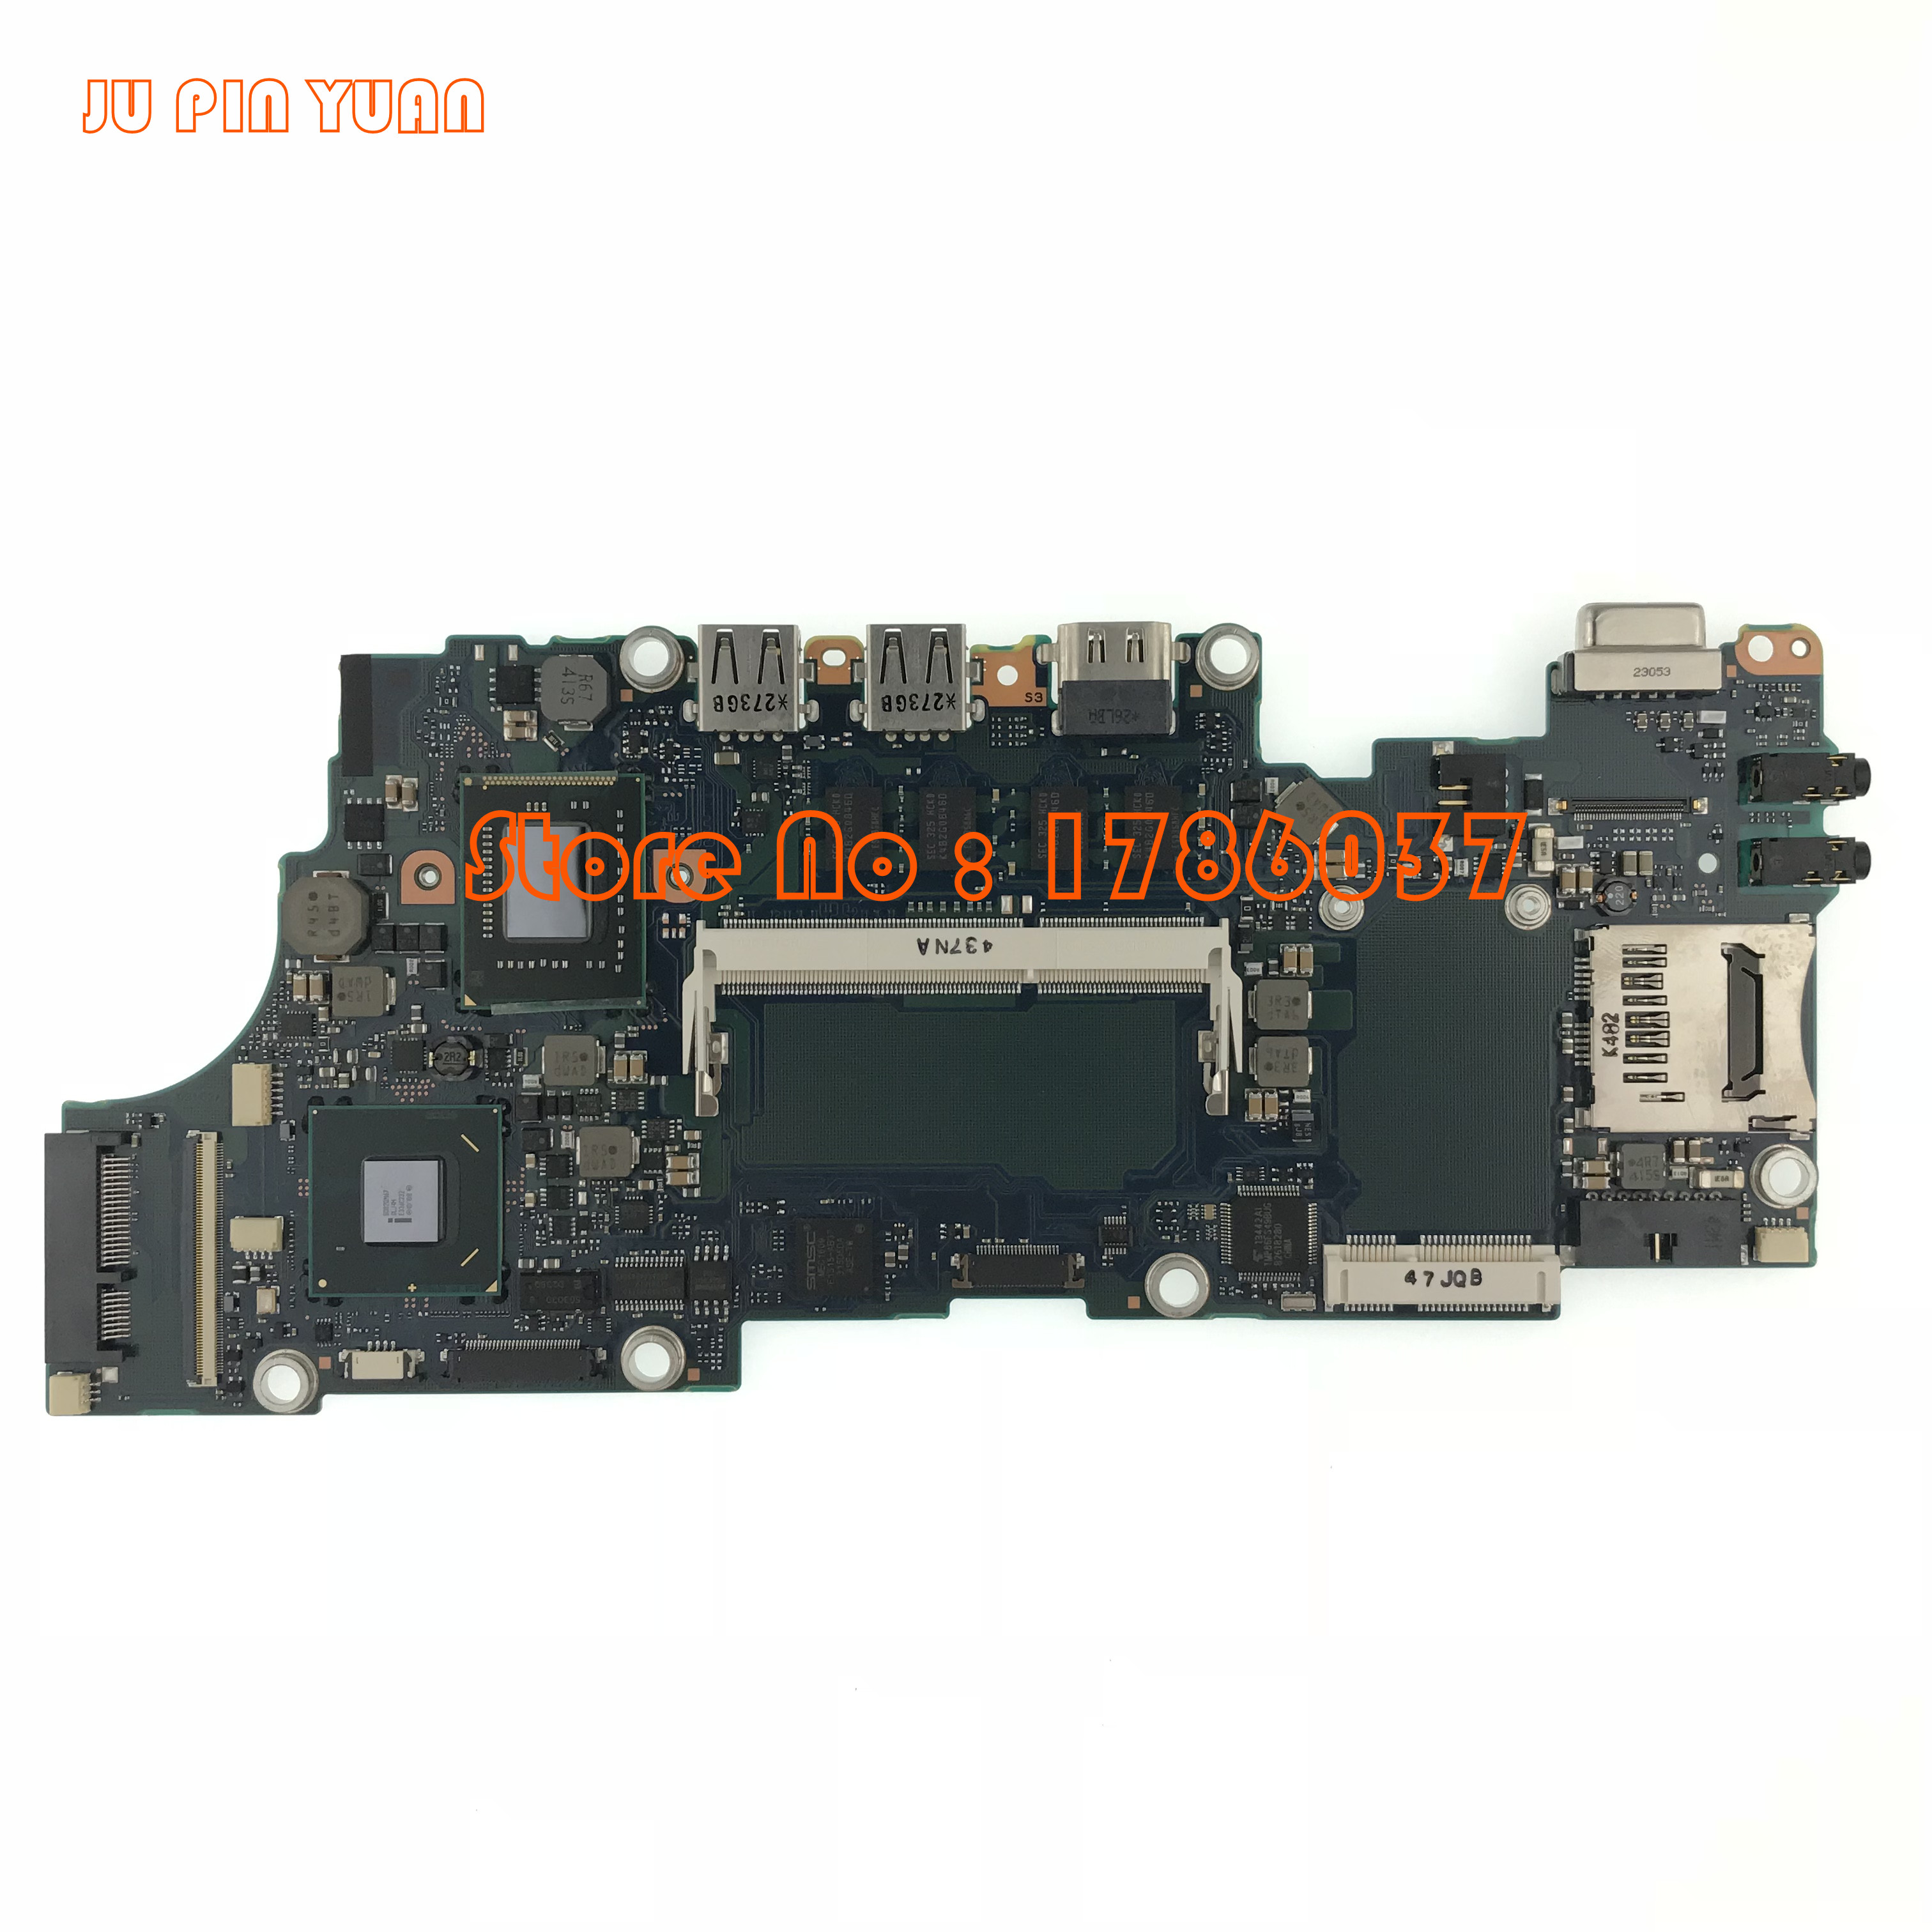 FALZSY1 A3162A for Toshiba Portege Z830 Z835 Z835-P330 series Laptop Motherboard with I7-2677M ,All functions fully Tested !!FALZSY1 A3162A for Toshiba Portege Z830 Z835 Z835-P330 series Laptop Motherboard with I7-2677M ,All functions fully Tested !!